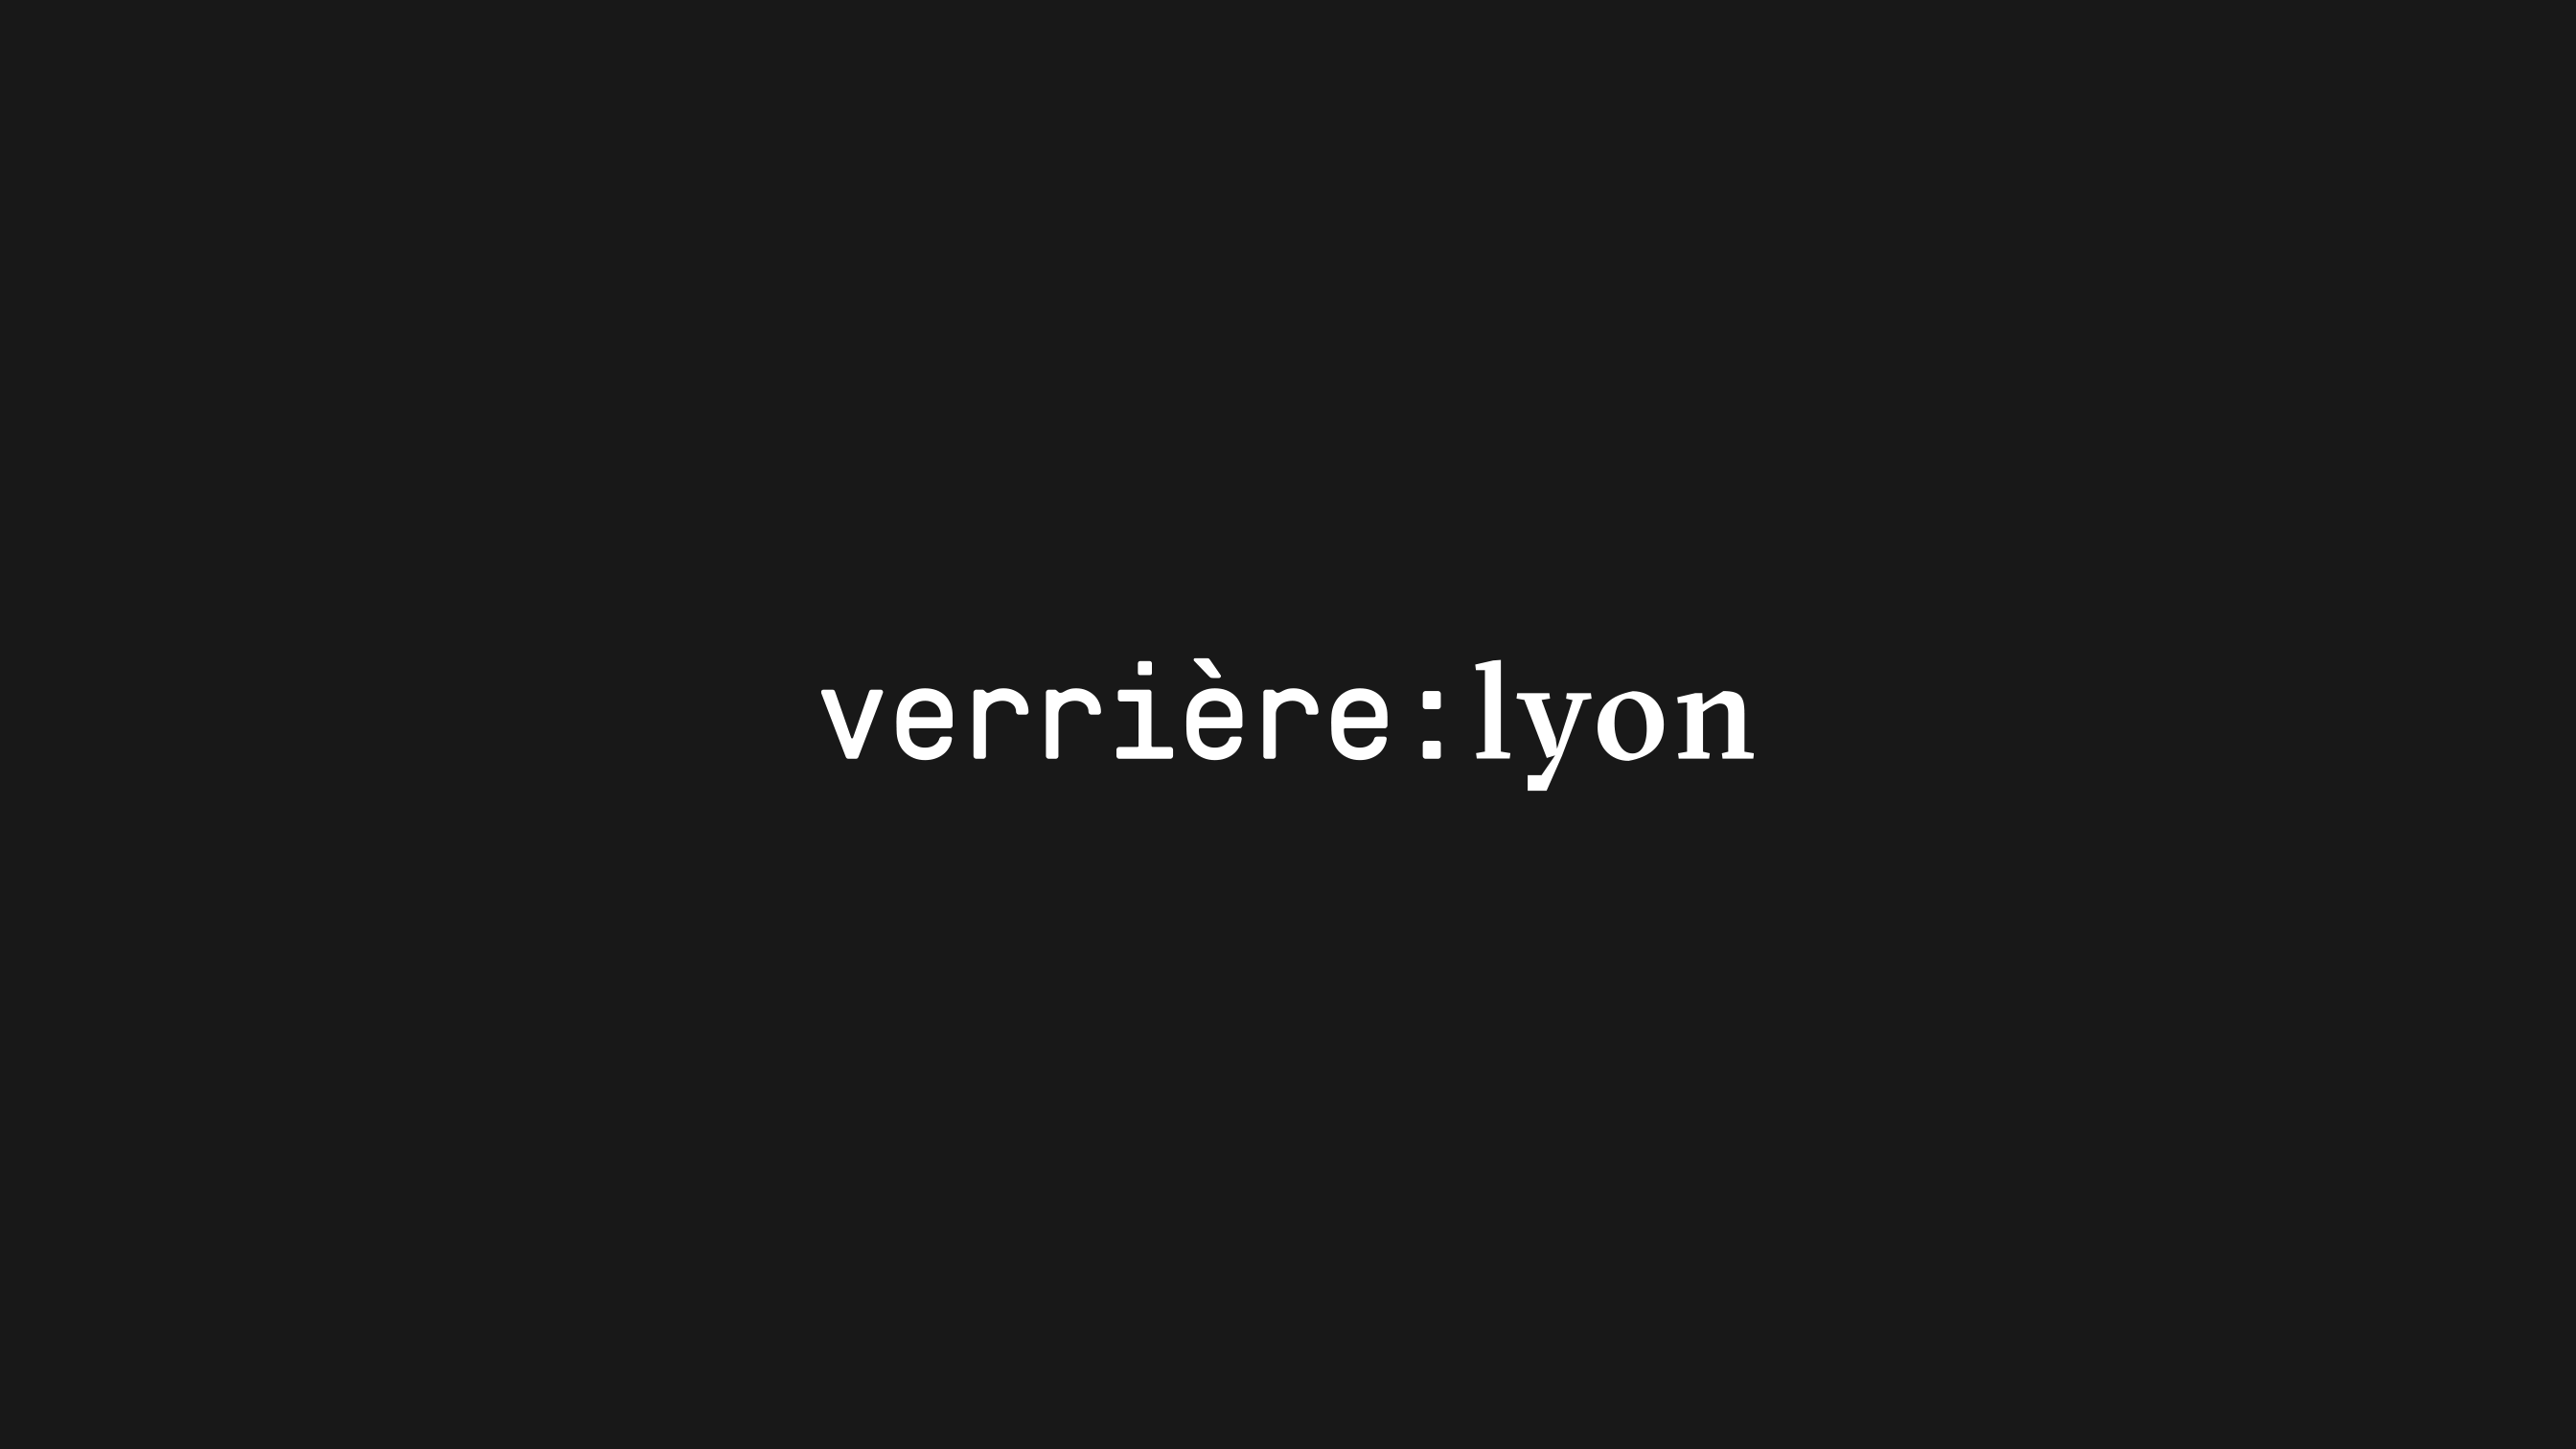 showcase-logotype-verriere-lyon